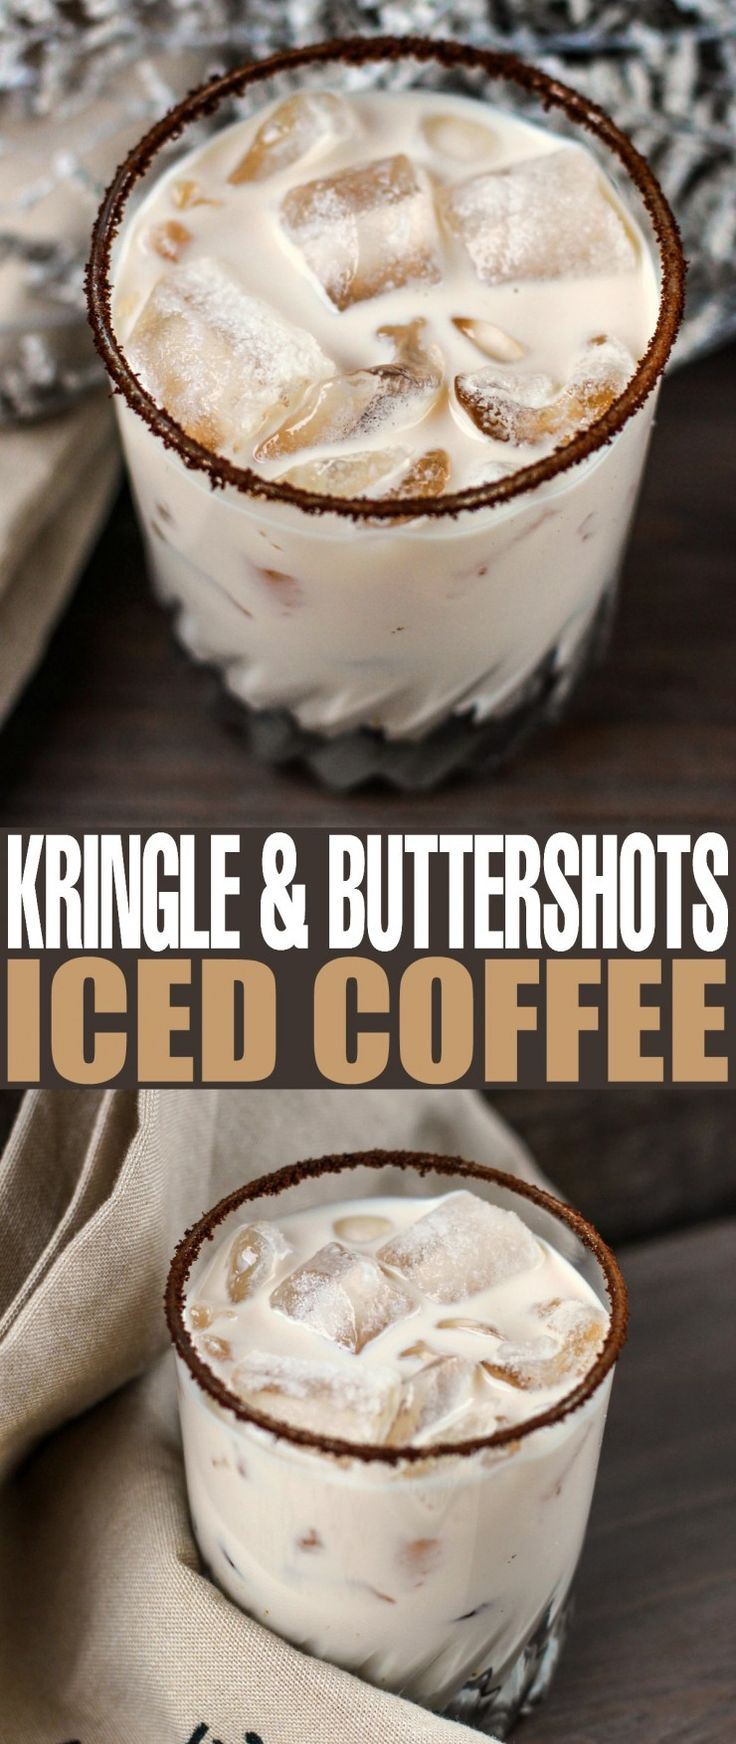 The holiday season is rife with holiday parties and dinners. After Christmas dinner and on new years eve, in particular, I enjoy a fancy drink. You know something sweet and delicious that I can savour slowly. I think this Kringle and Buttershots Iced Coff